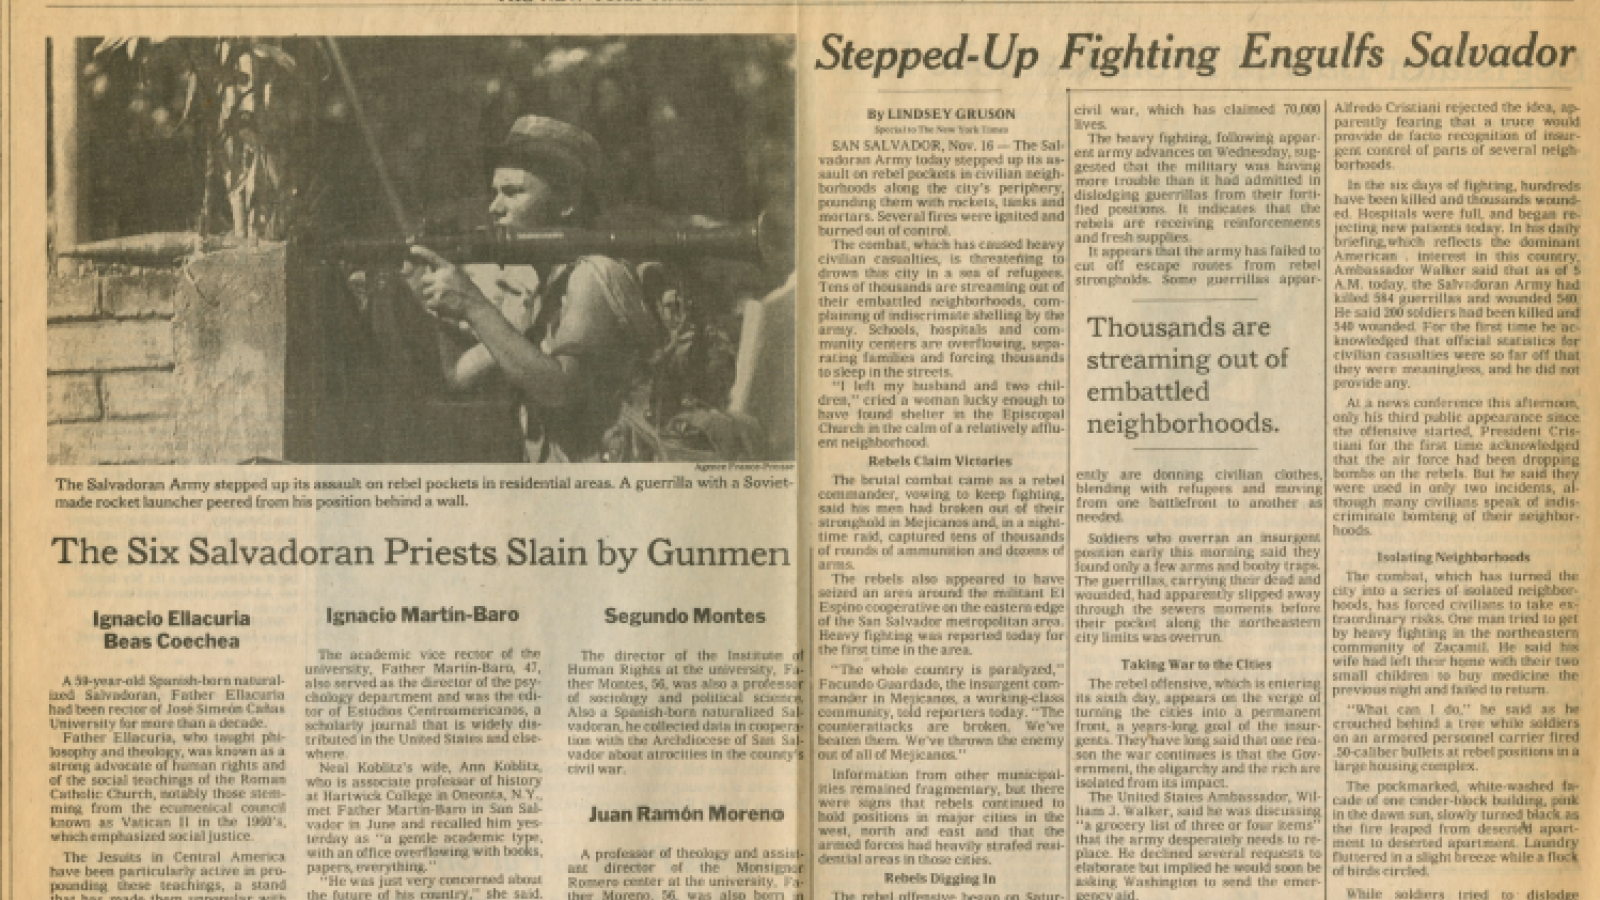 """The Six Salvadoran Priests Slain by Gunmen"" in The New York Times, Nov 17, 1989"